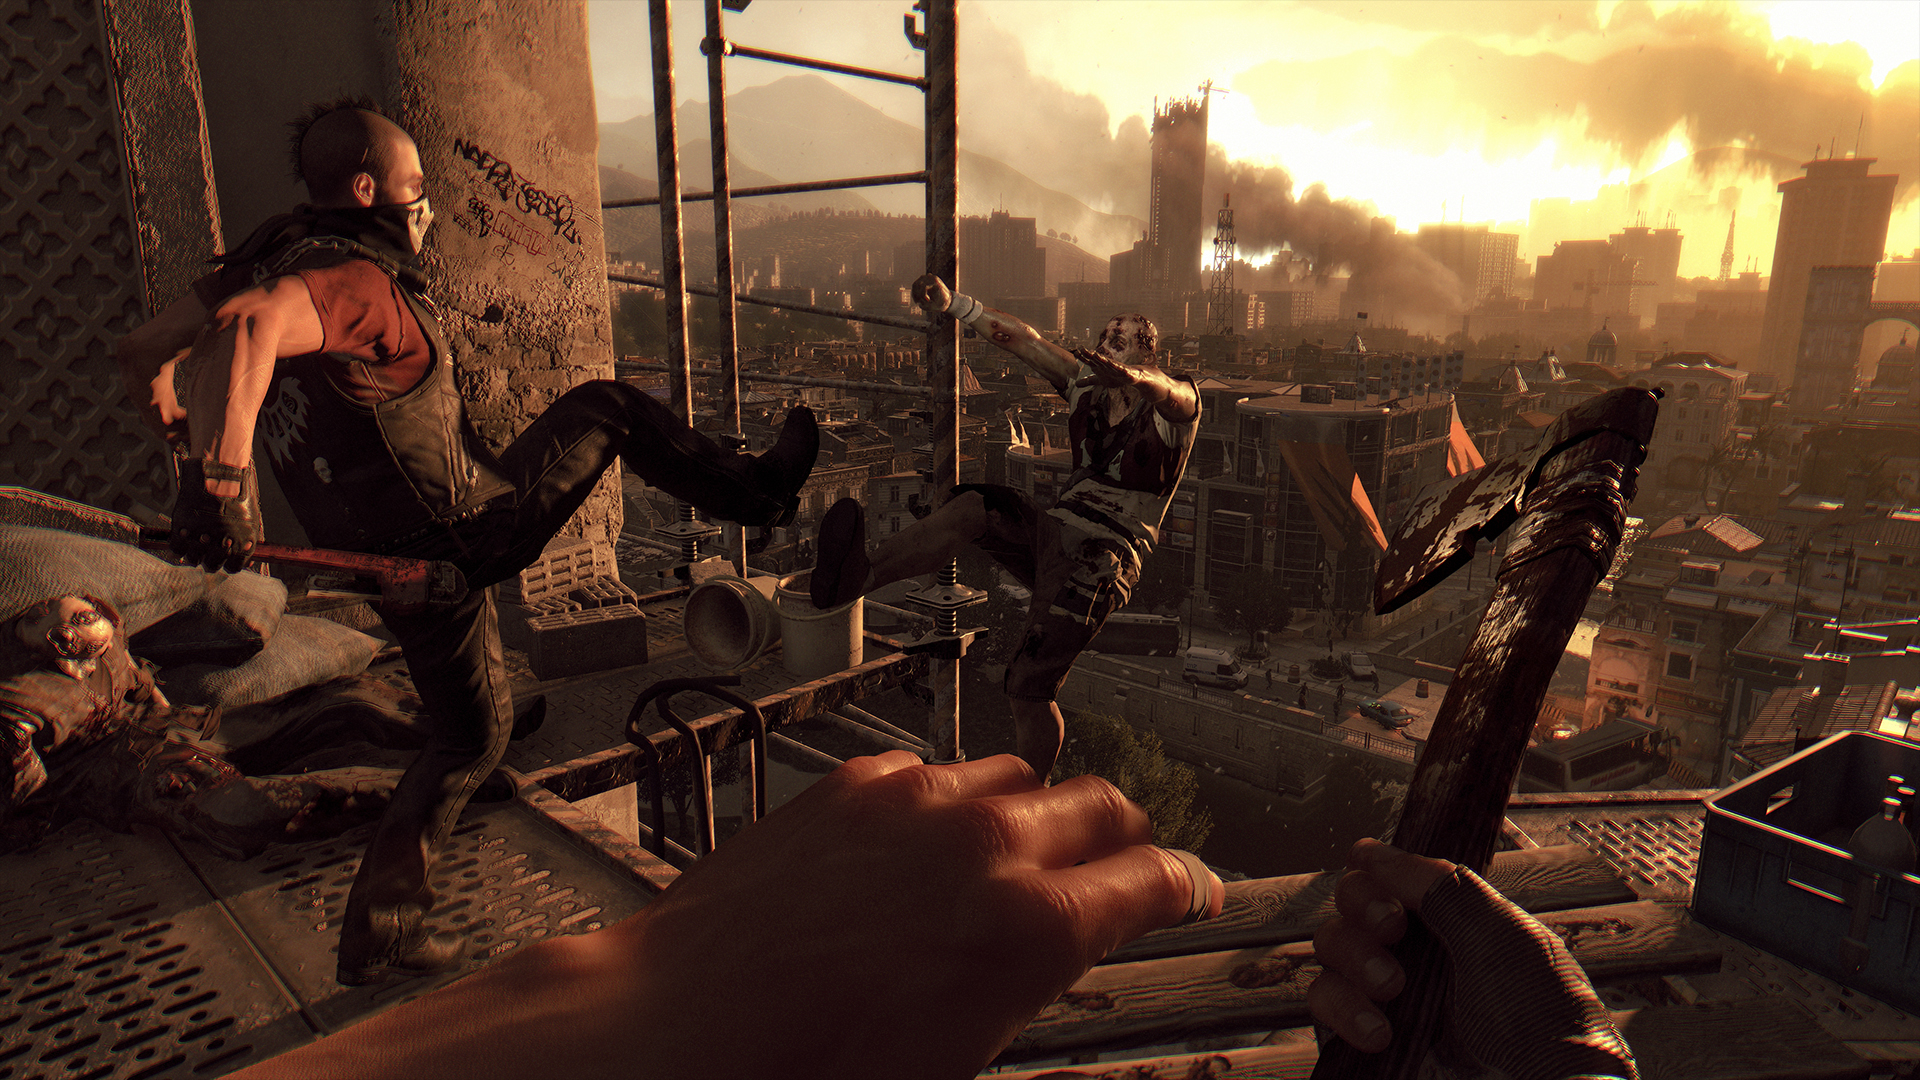 Dying Light devs double down on mocking Destiny Red Bull promo with DLC campaign